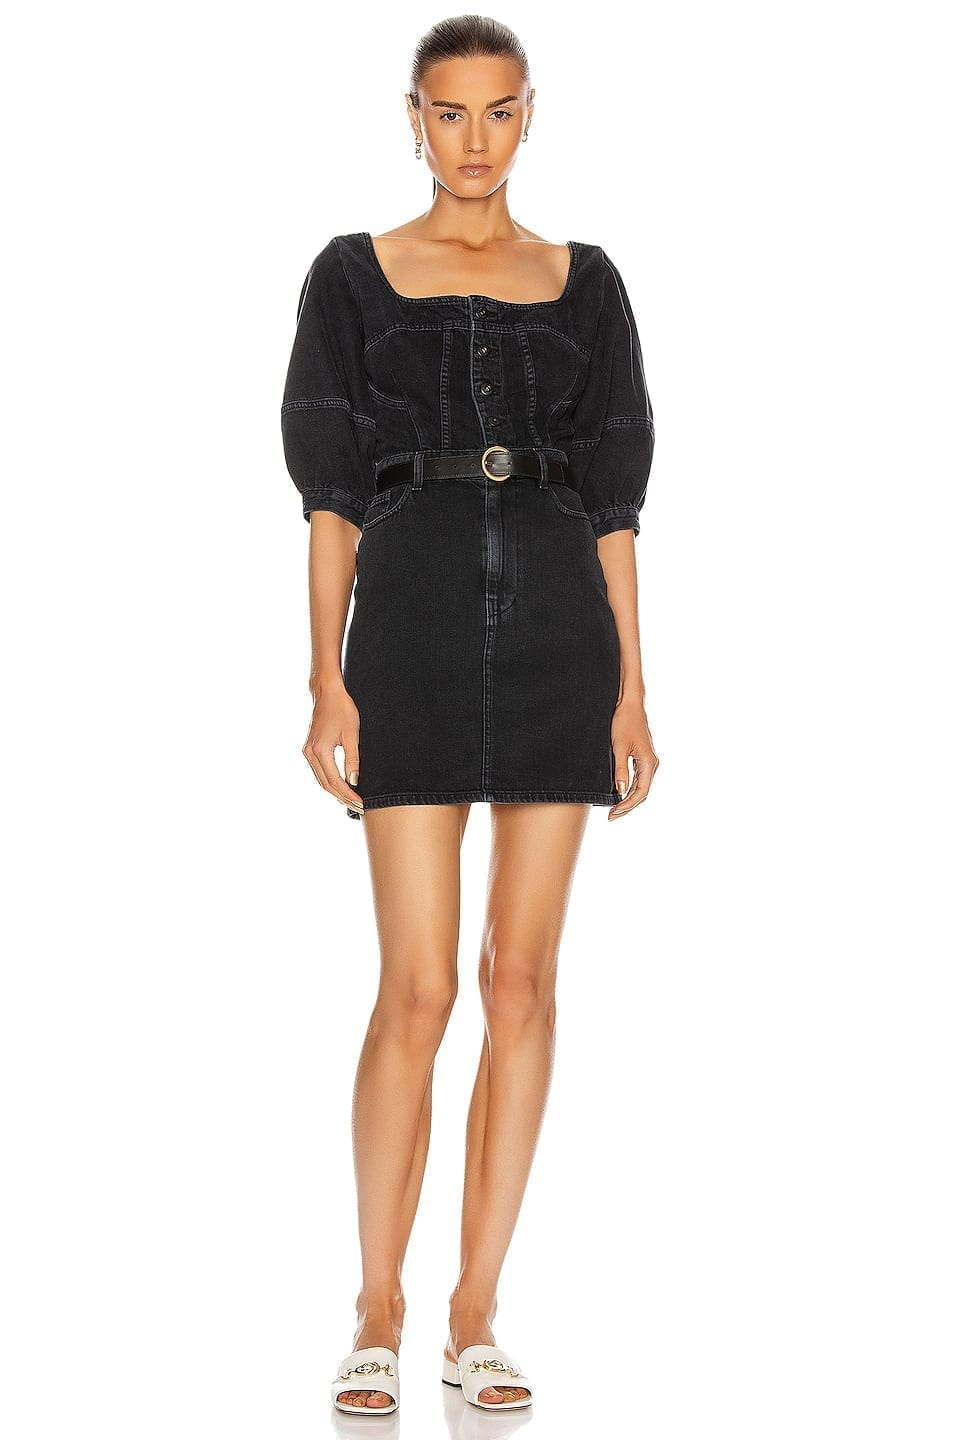 JONATHAN SIMKHAI STANDARD Puff Sleeve Mini Dress